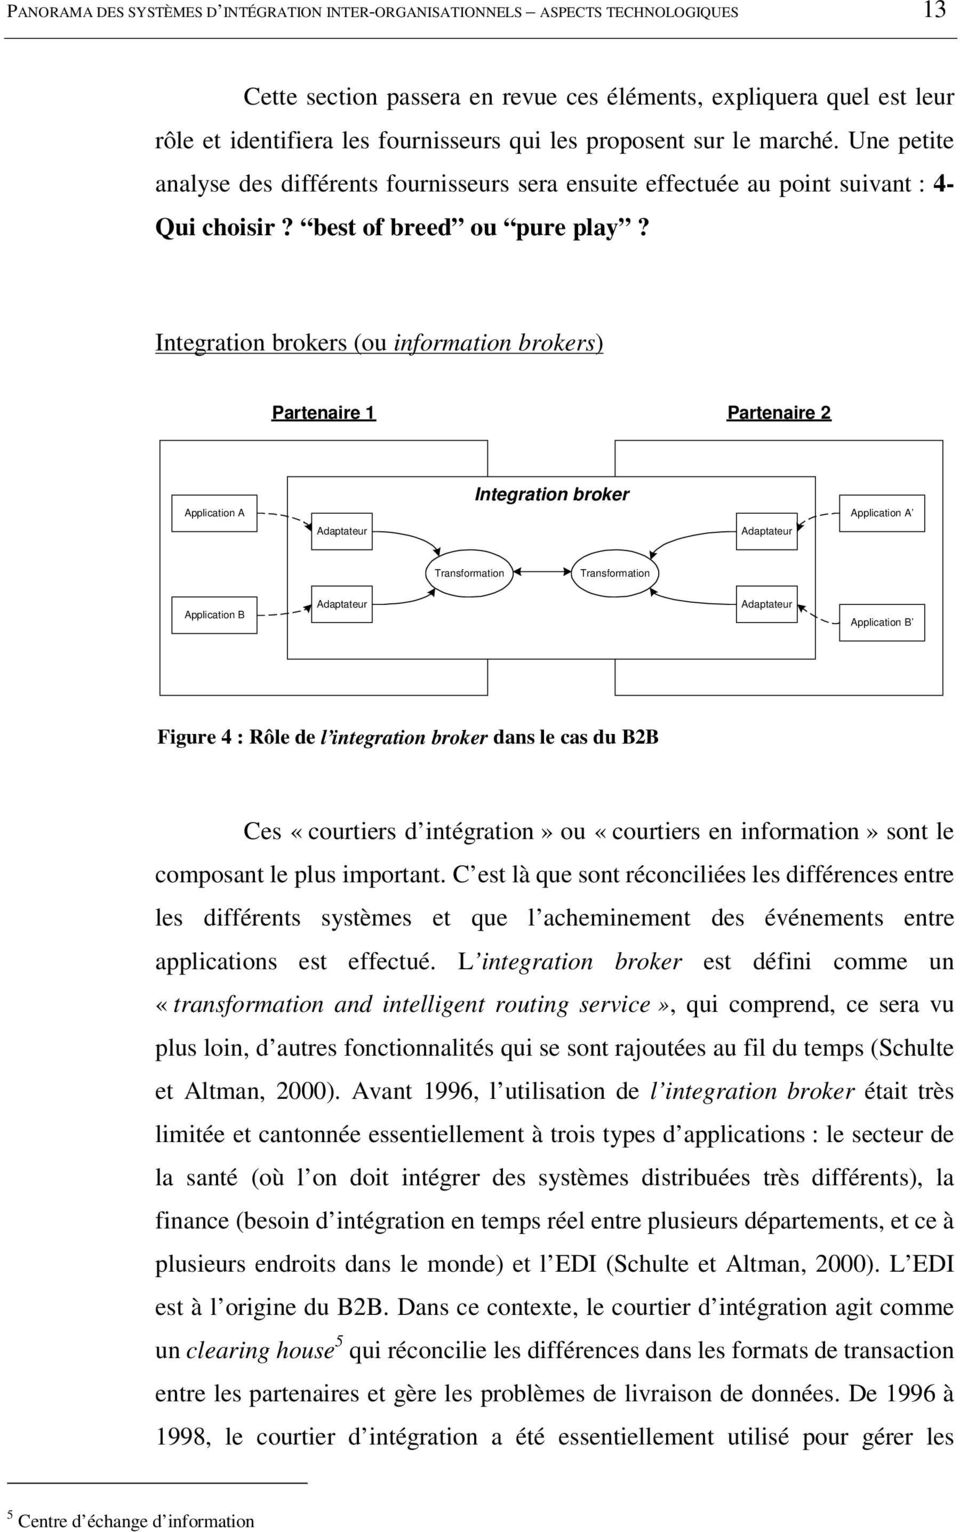 Integration brokers (ou information brokers) Partenaire 1 Partenaire 2 Application A Integration broker Application A Adaptateur Adaptateur Transformation Transformation Application B Adaptateur